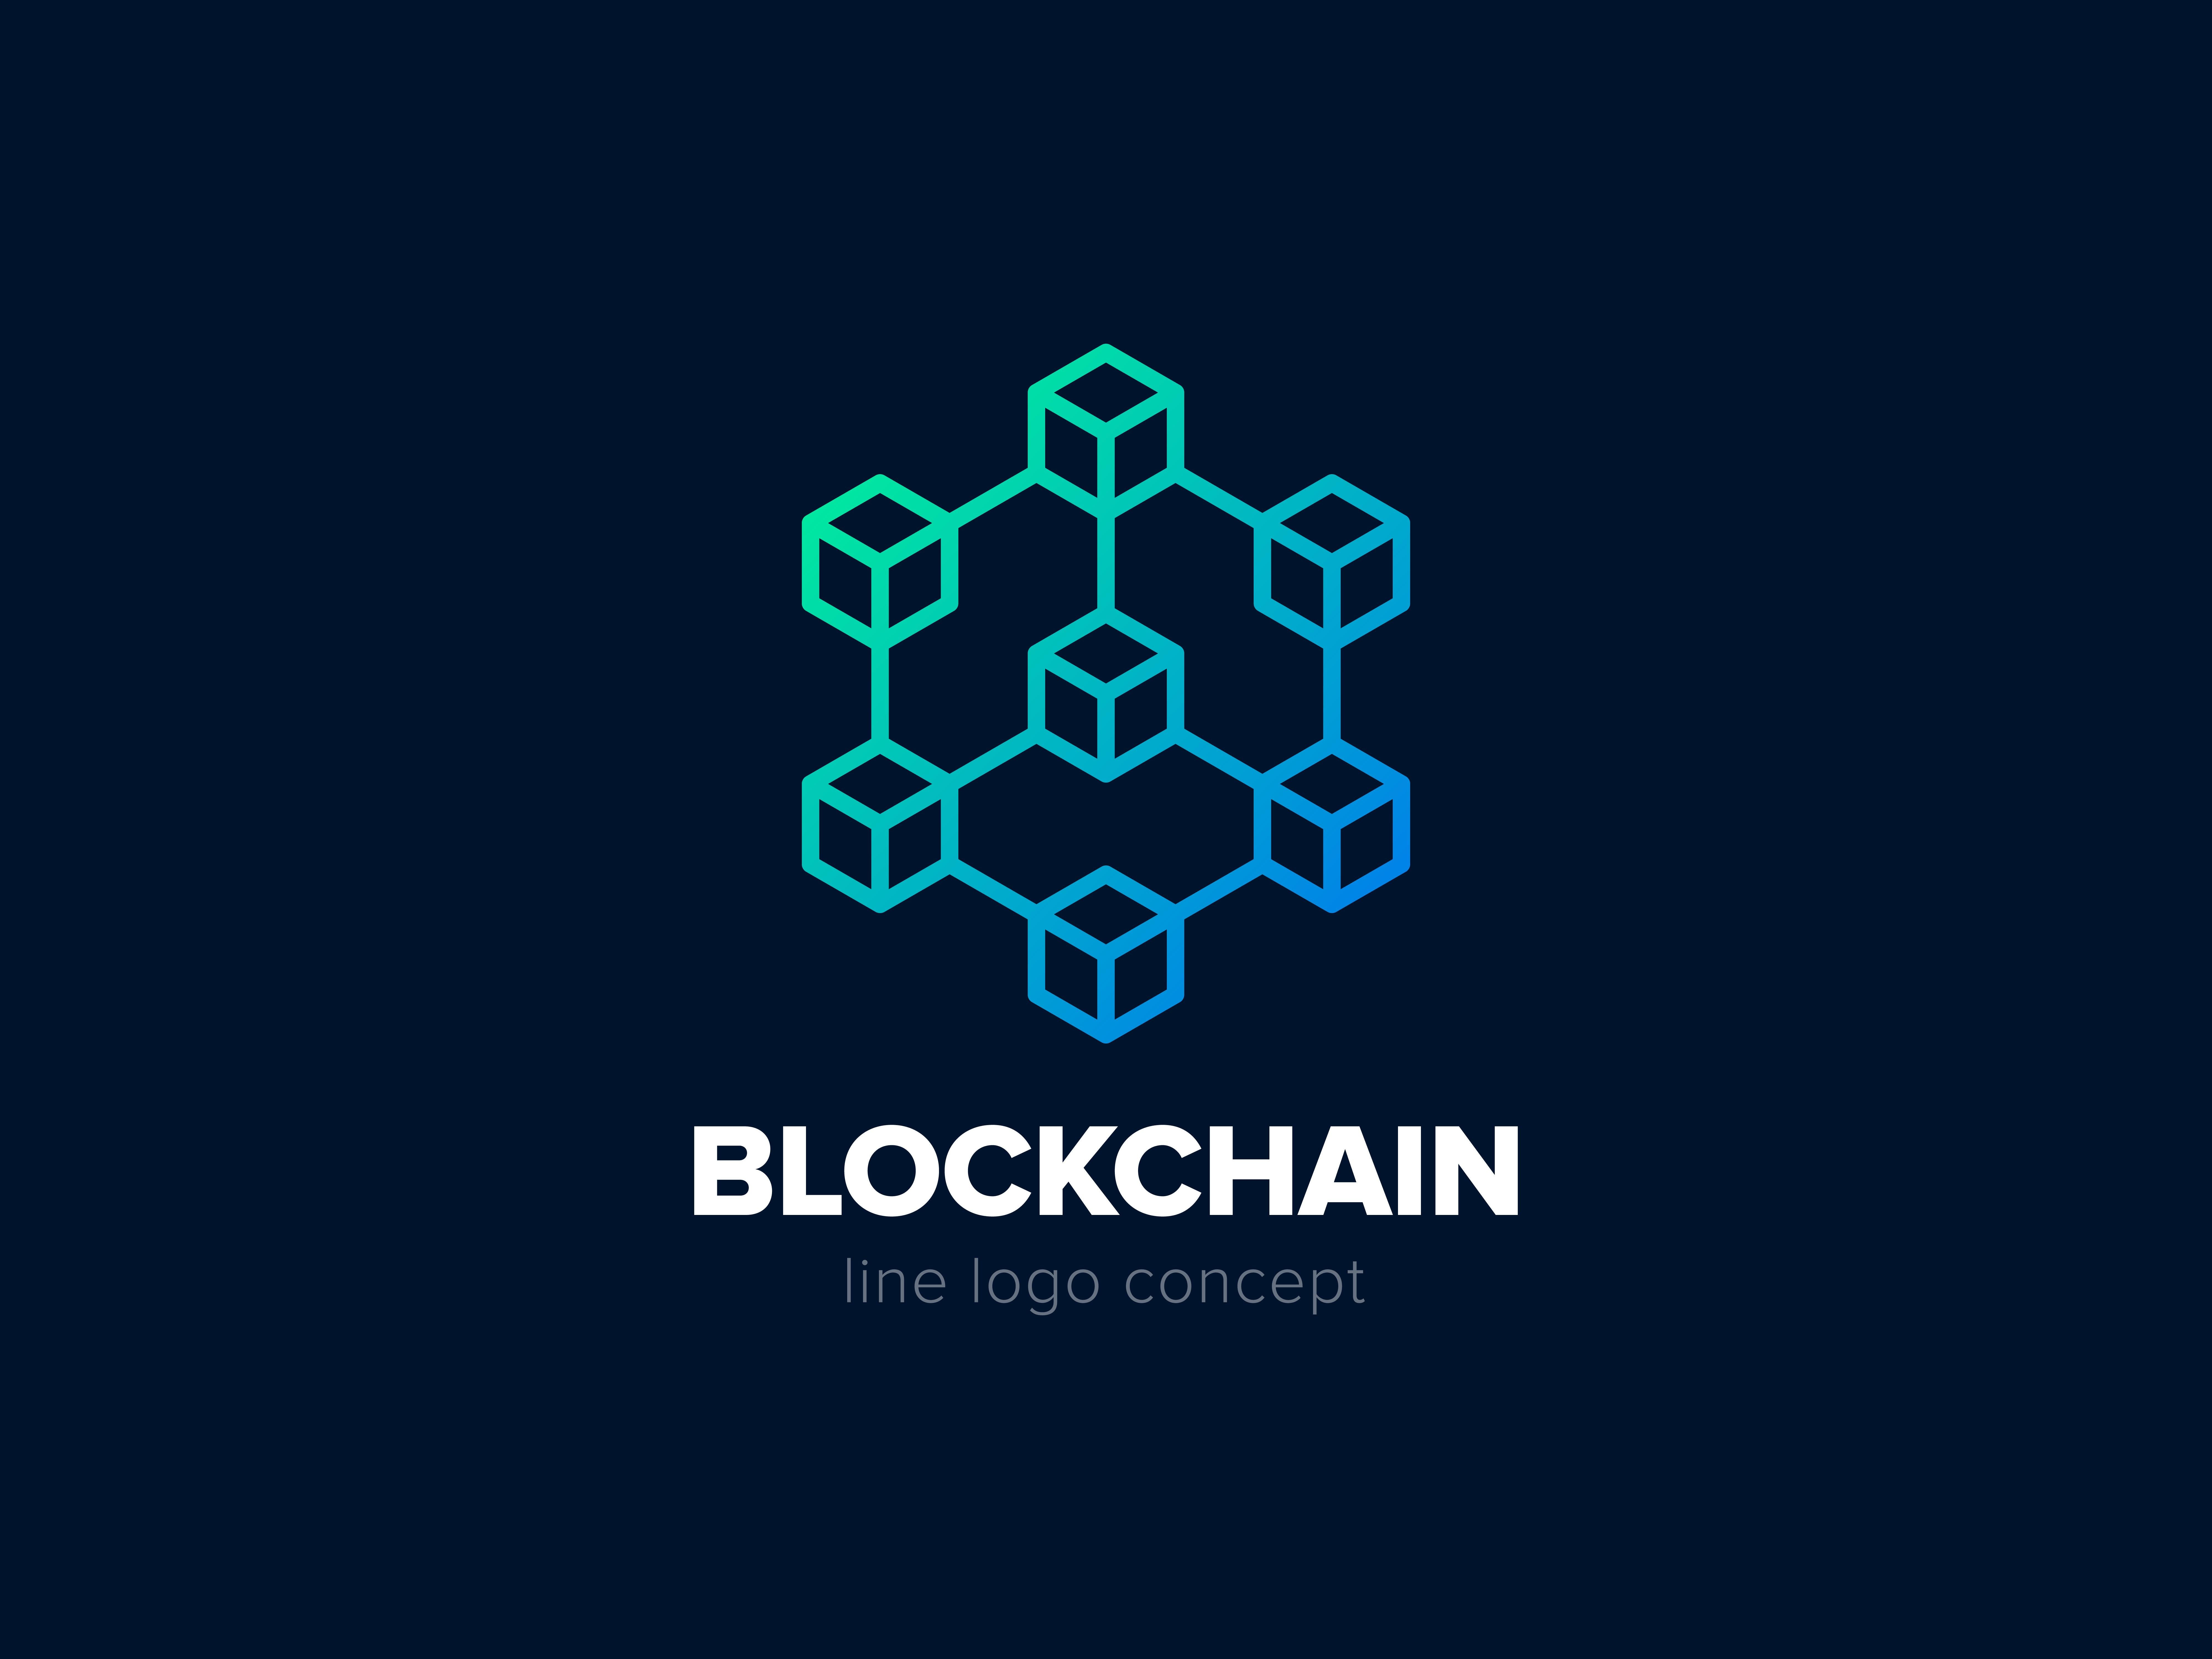 Blockchain Training in Singapore Singapore for Beginners-Bitcoin training-introduction to cryptocurrency-ico-ethereum-hyperledger-smart contracts training